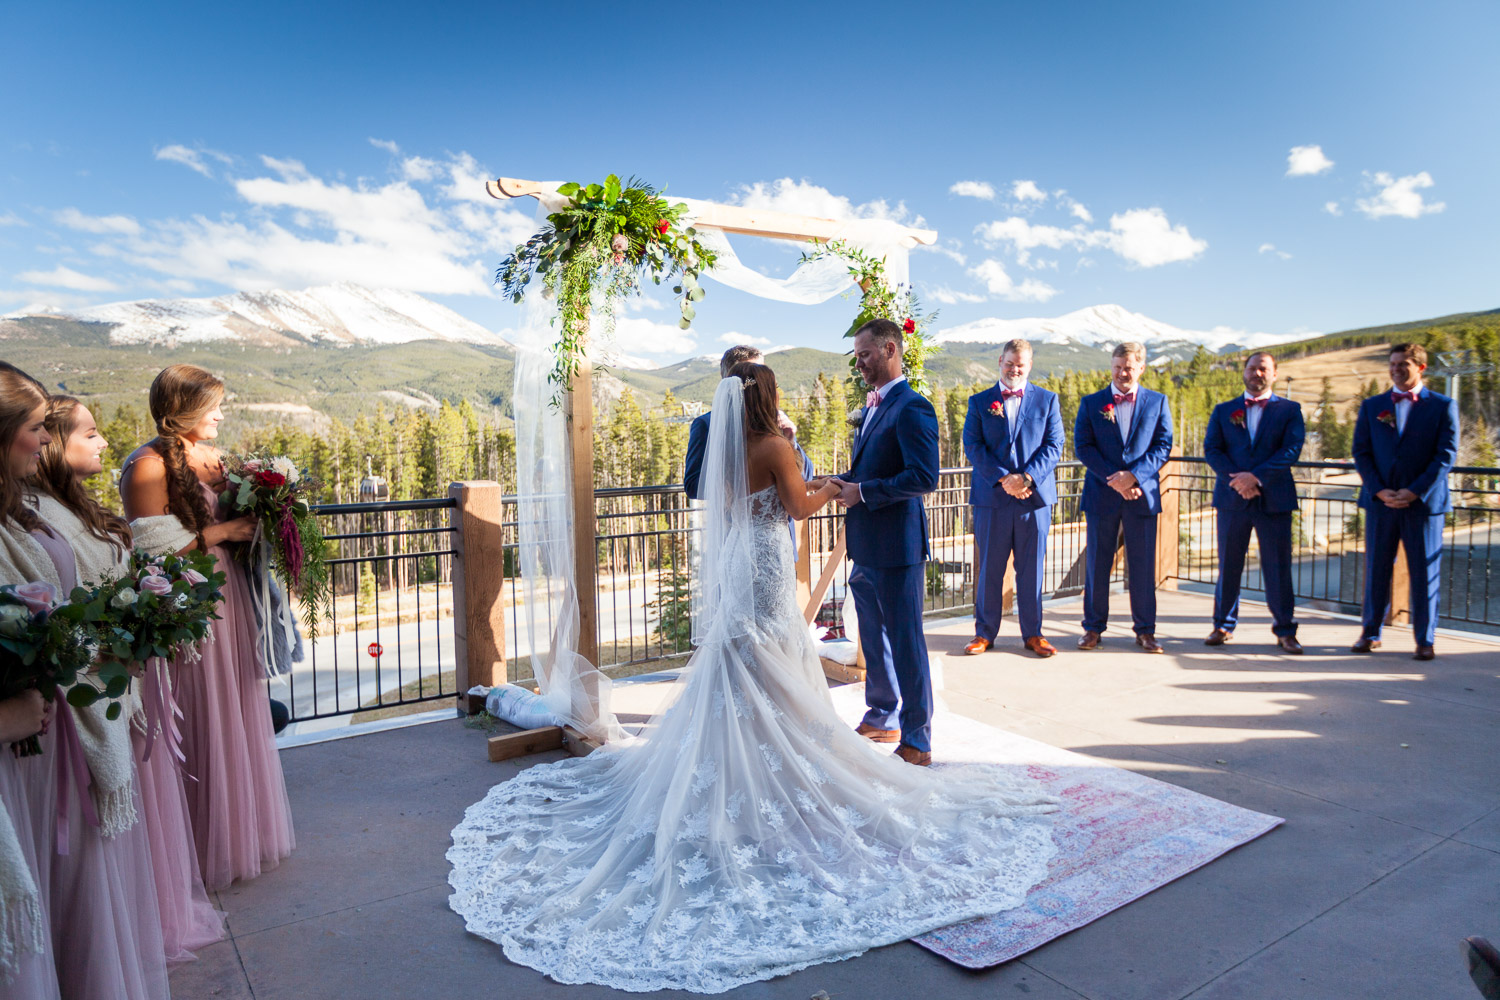 Sevens Breckenridge Wedding Ceremony With Mountain Views